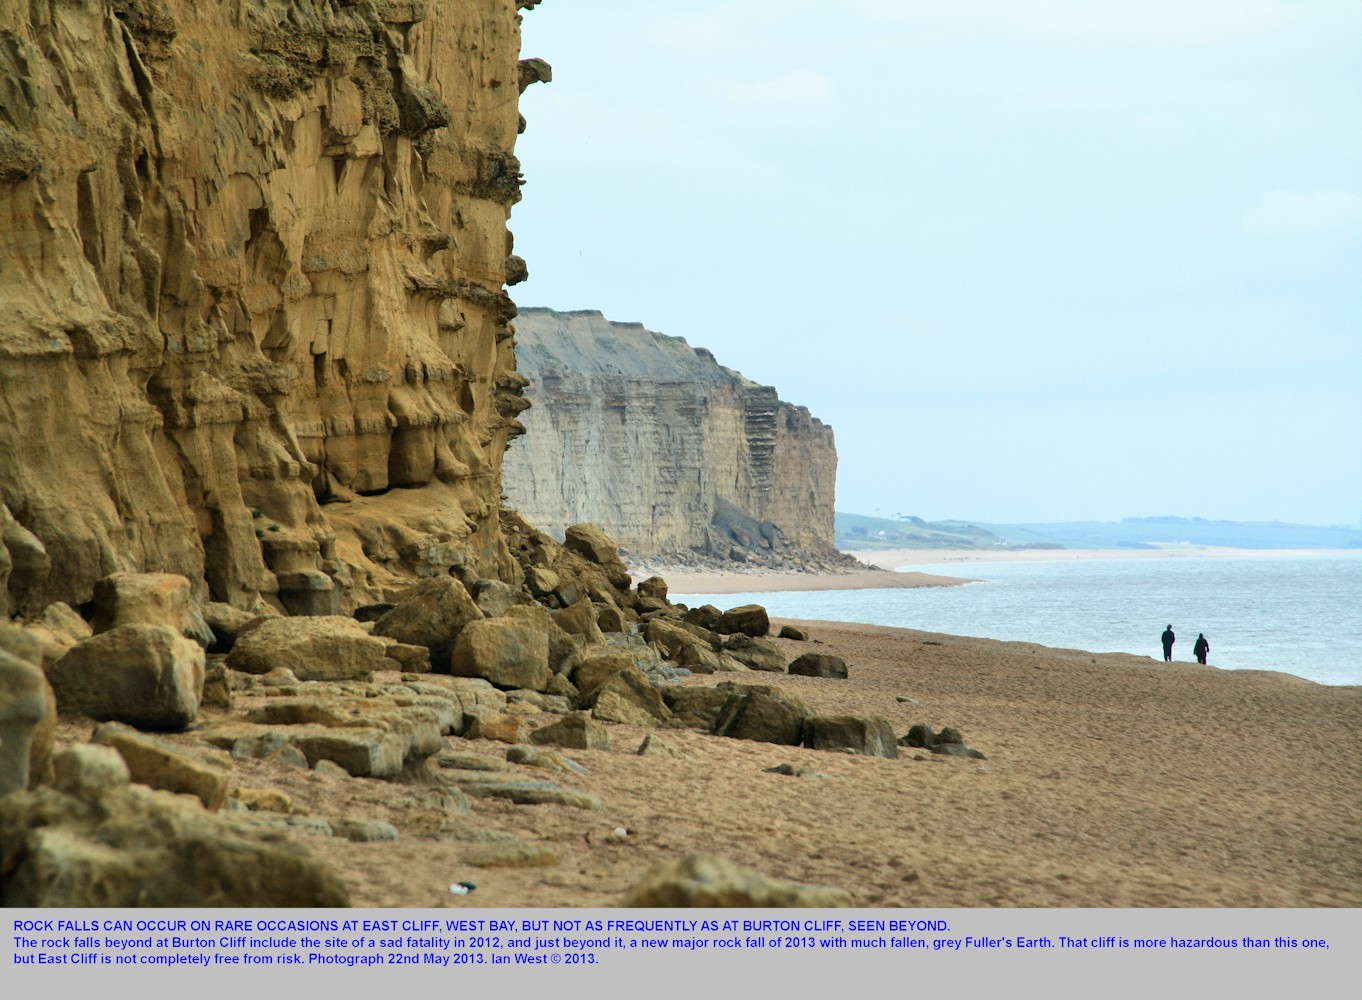 A small rock fall at East Cliff, West Bay, Bridport, Dorset, and a large rock fall at Burton Cliff in the distance, seen on 22nd May 2013